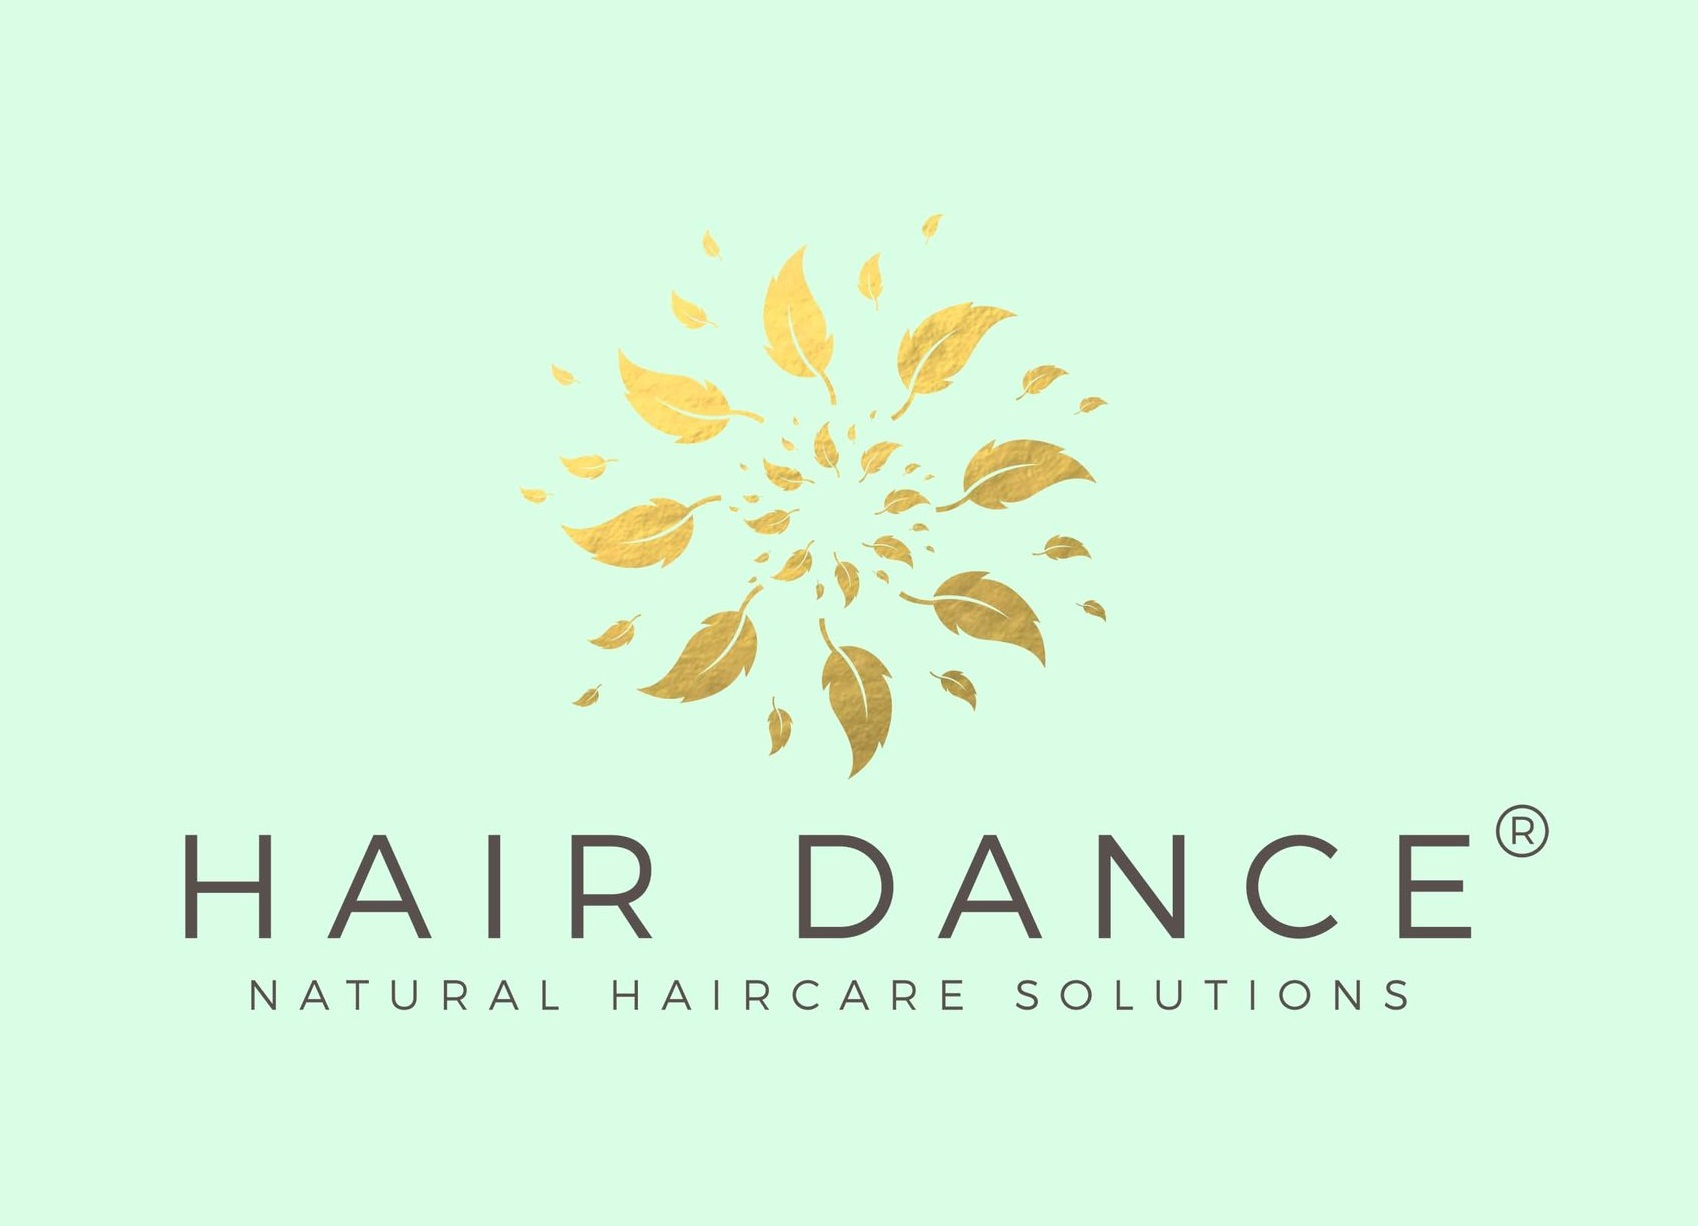 Hair Dance: Rebrand and Redesign Initiative - In collaboration with the owner, I led the rebranding and redesign initiative for my former client, an accessible and natural hair care range, in order to modernize the brand.